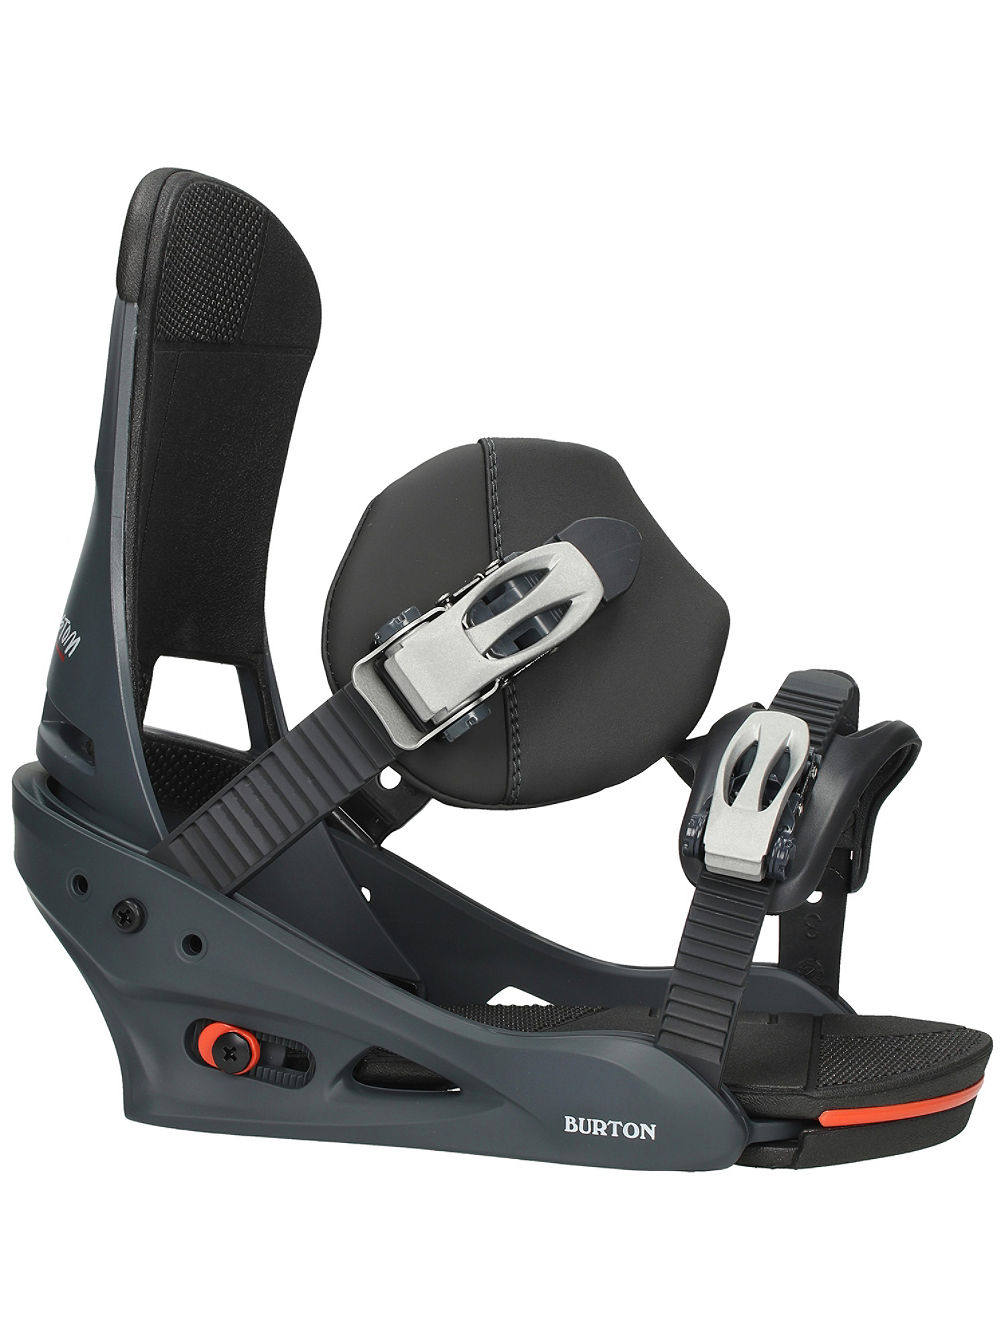 Custom Snowboard Bindings